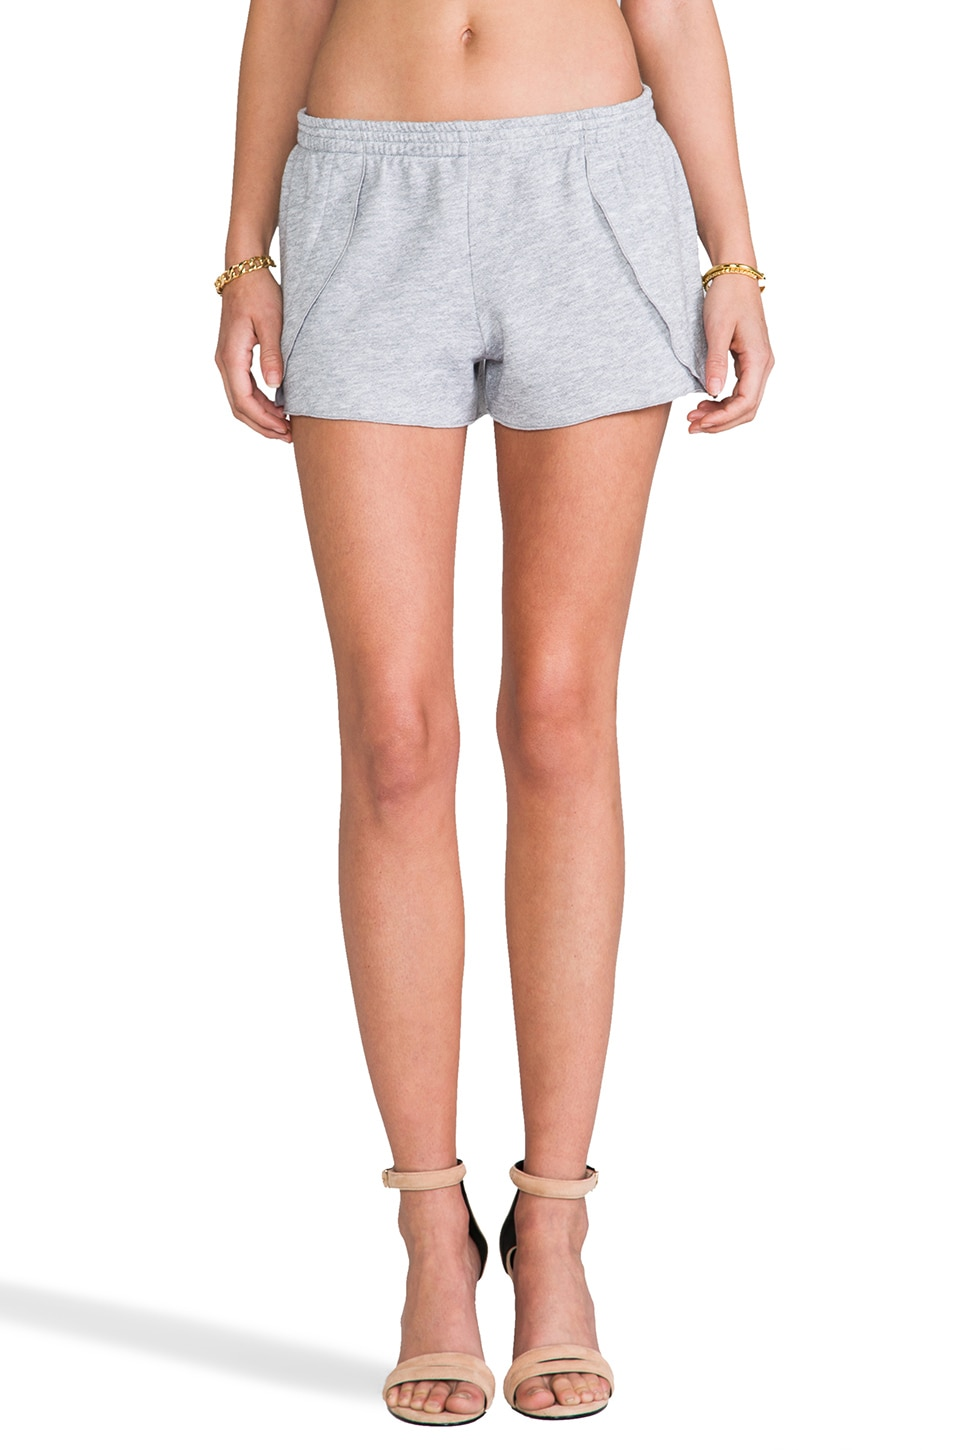 SAM&LAVI Kathryn Shorts in Heather Grey